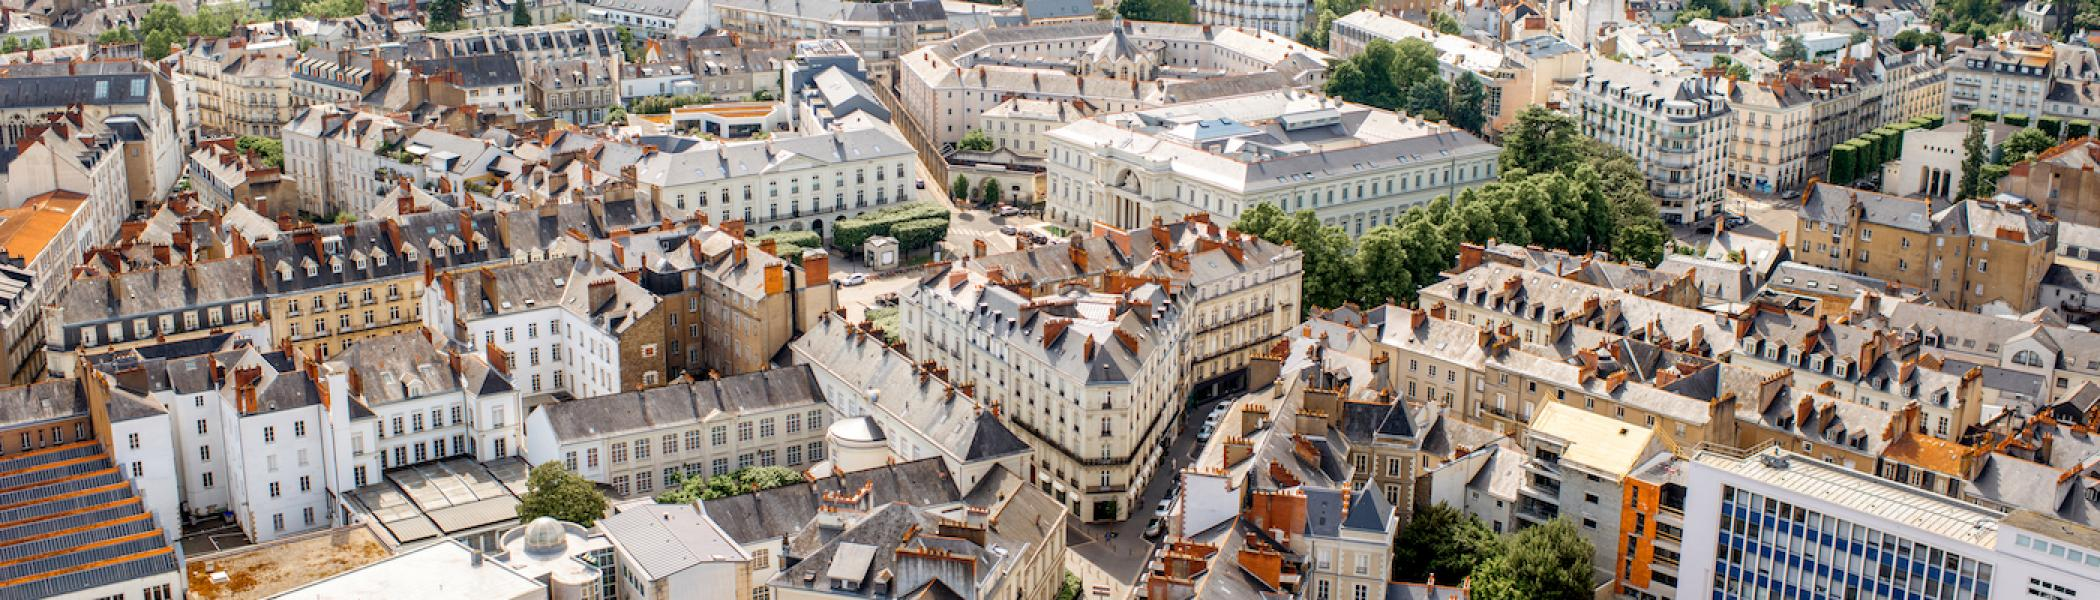 An aerial view of buildings in Nantes, France